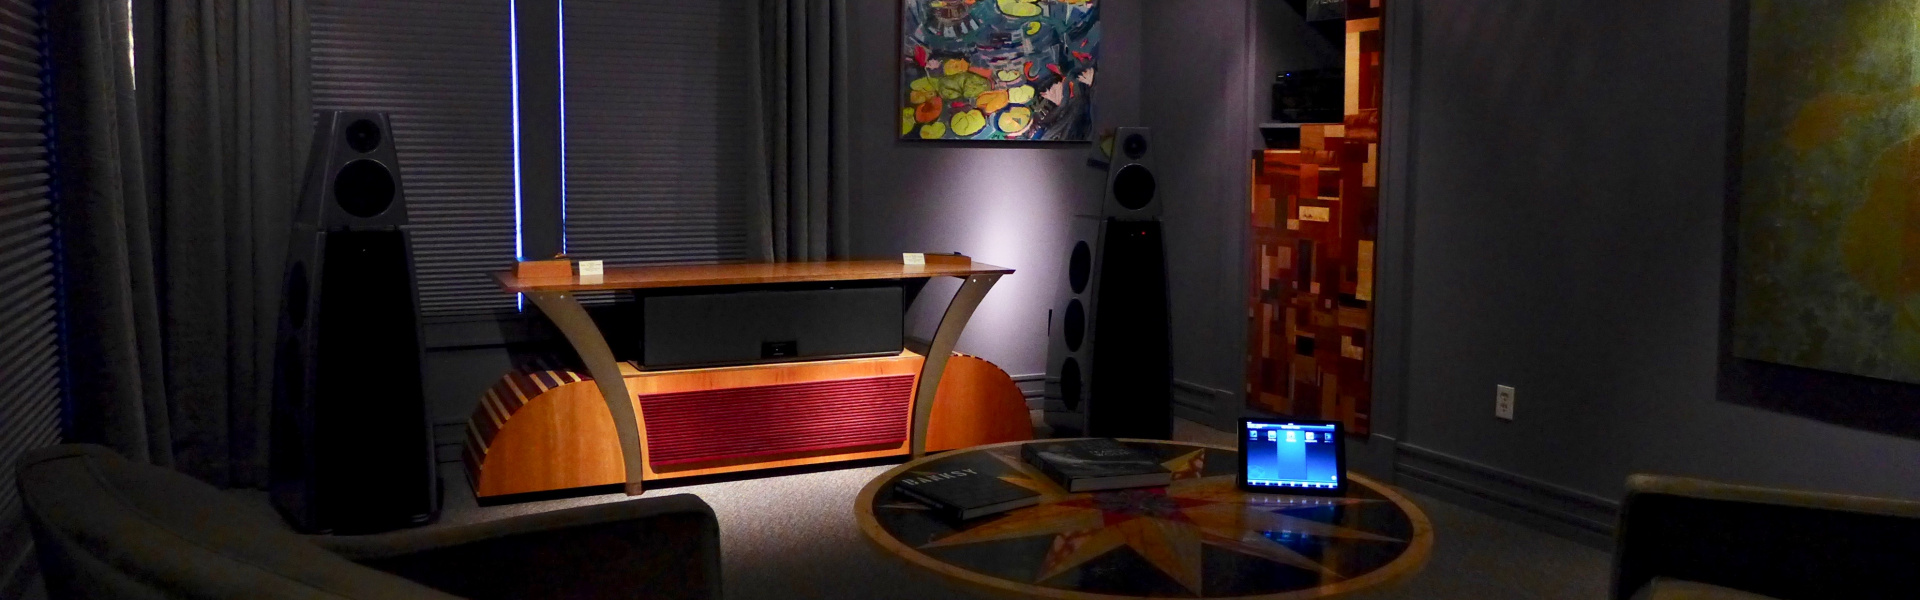 Smart home installation by AudioArt for Concord